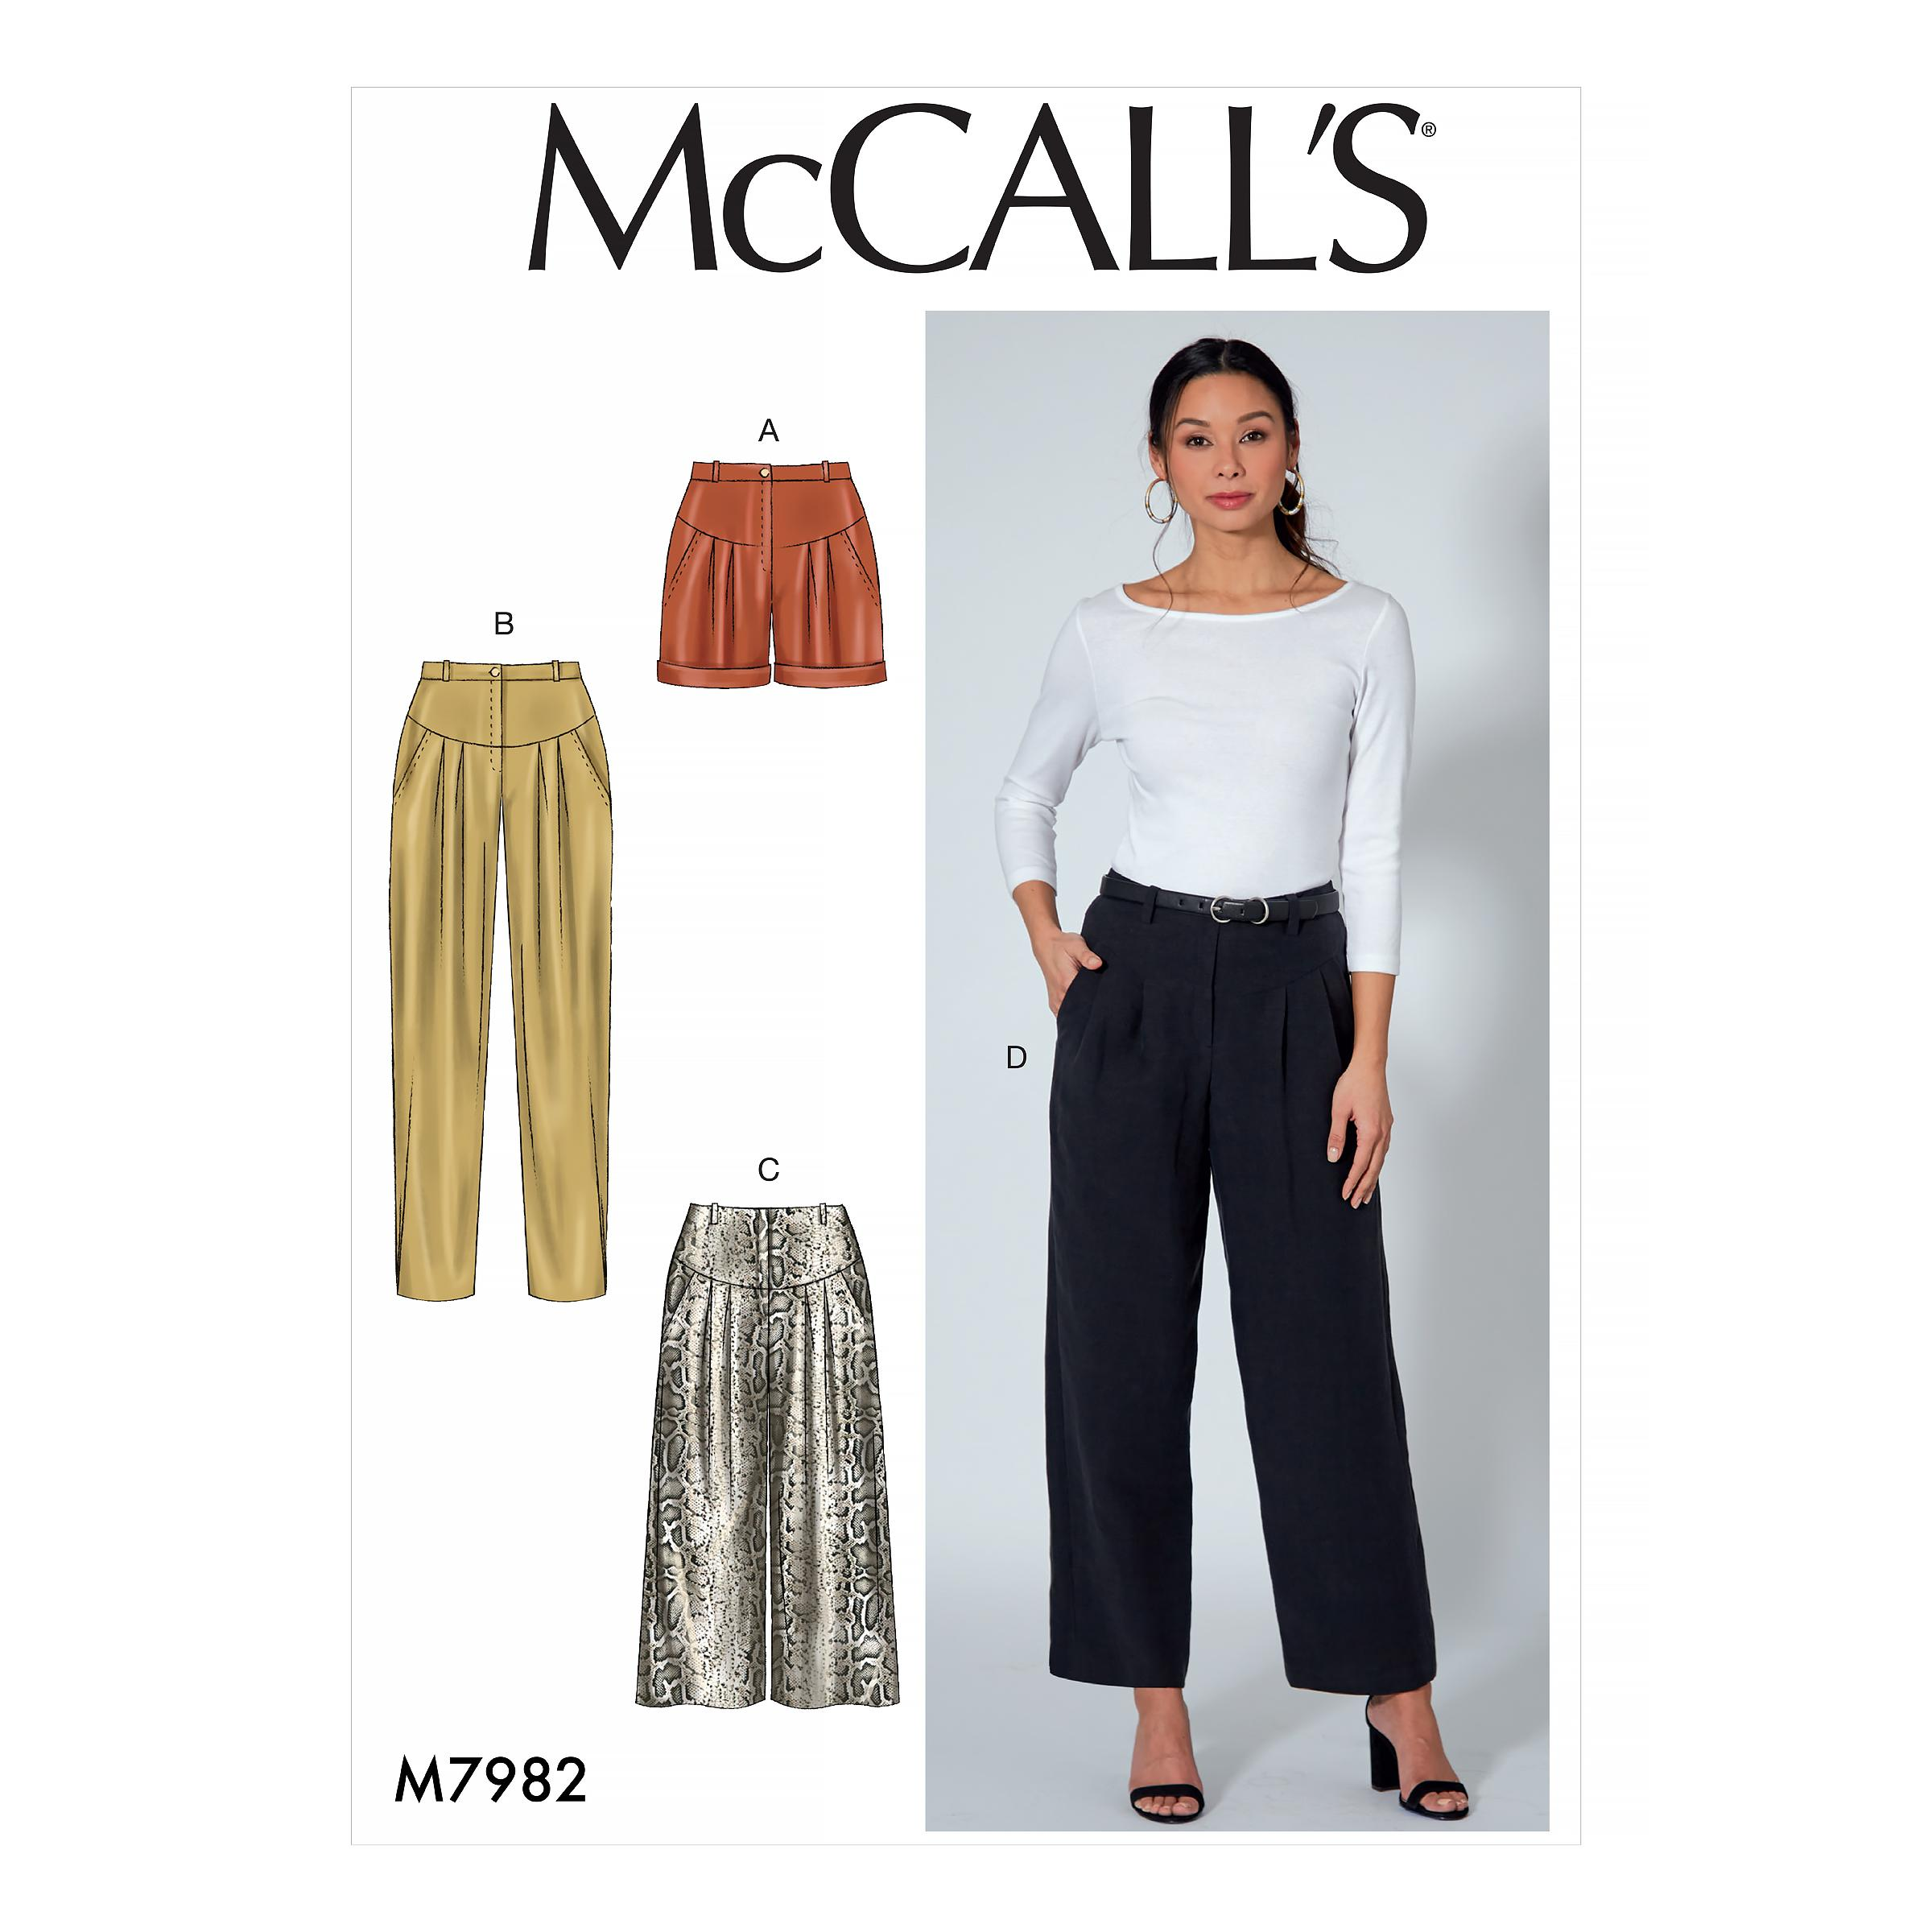 McCalls M7982 Misses Pants, Jumpsuits & Shorts